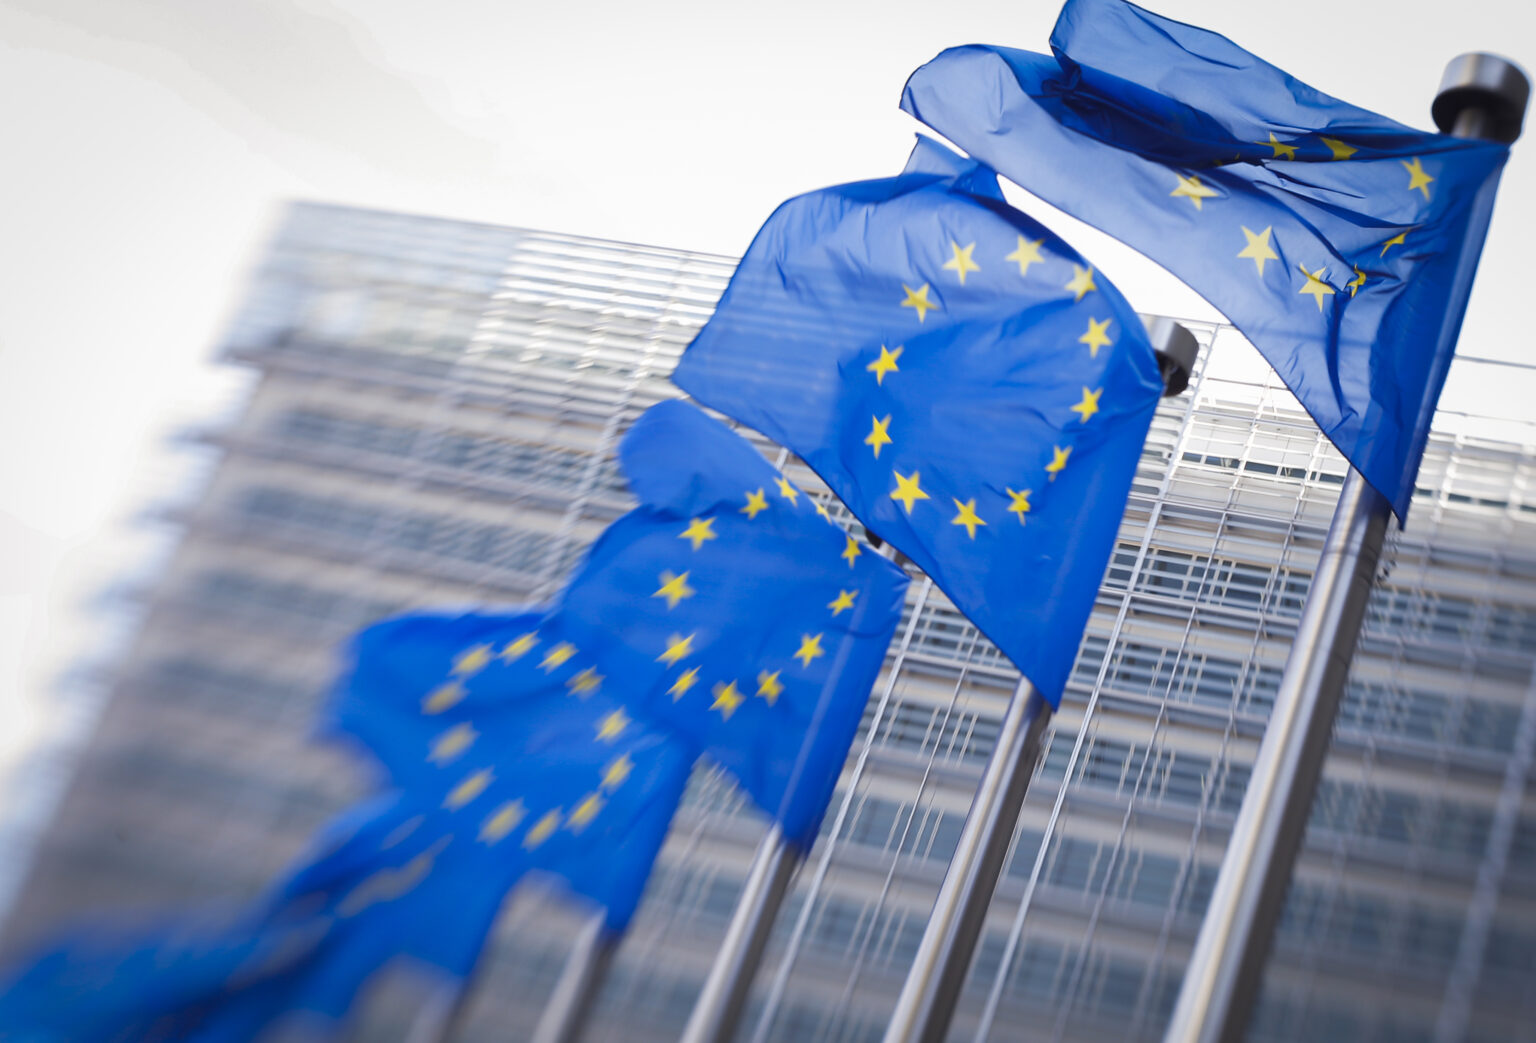 European Union communications target by hackers, NYT report